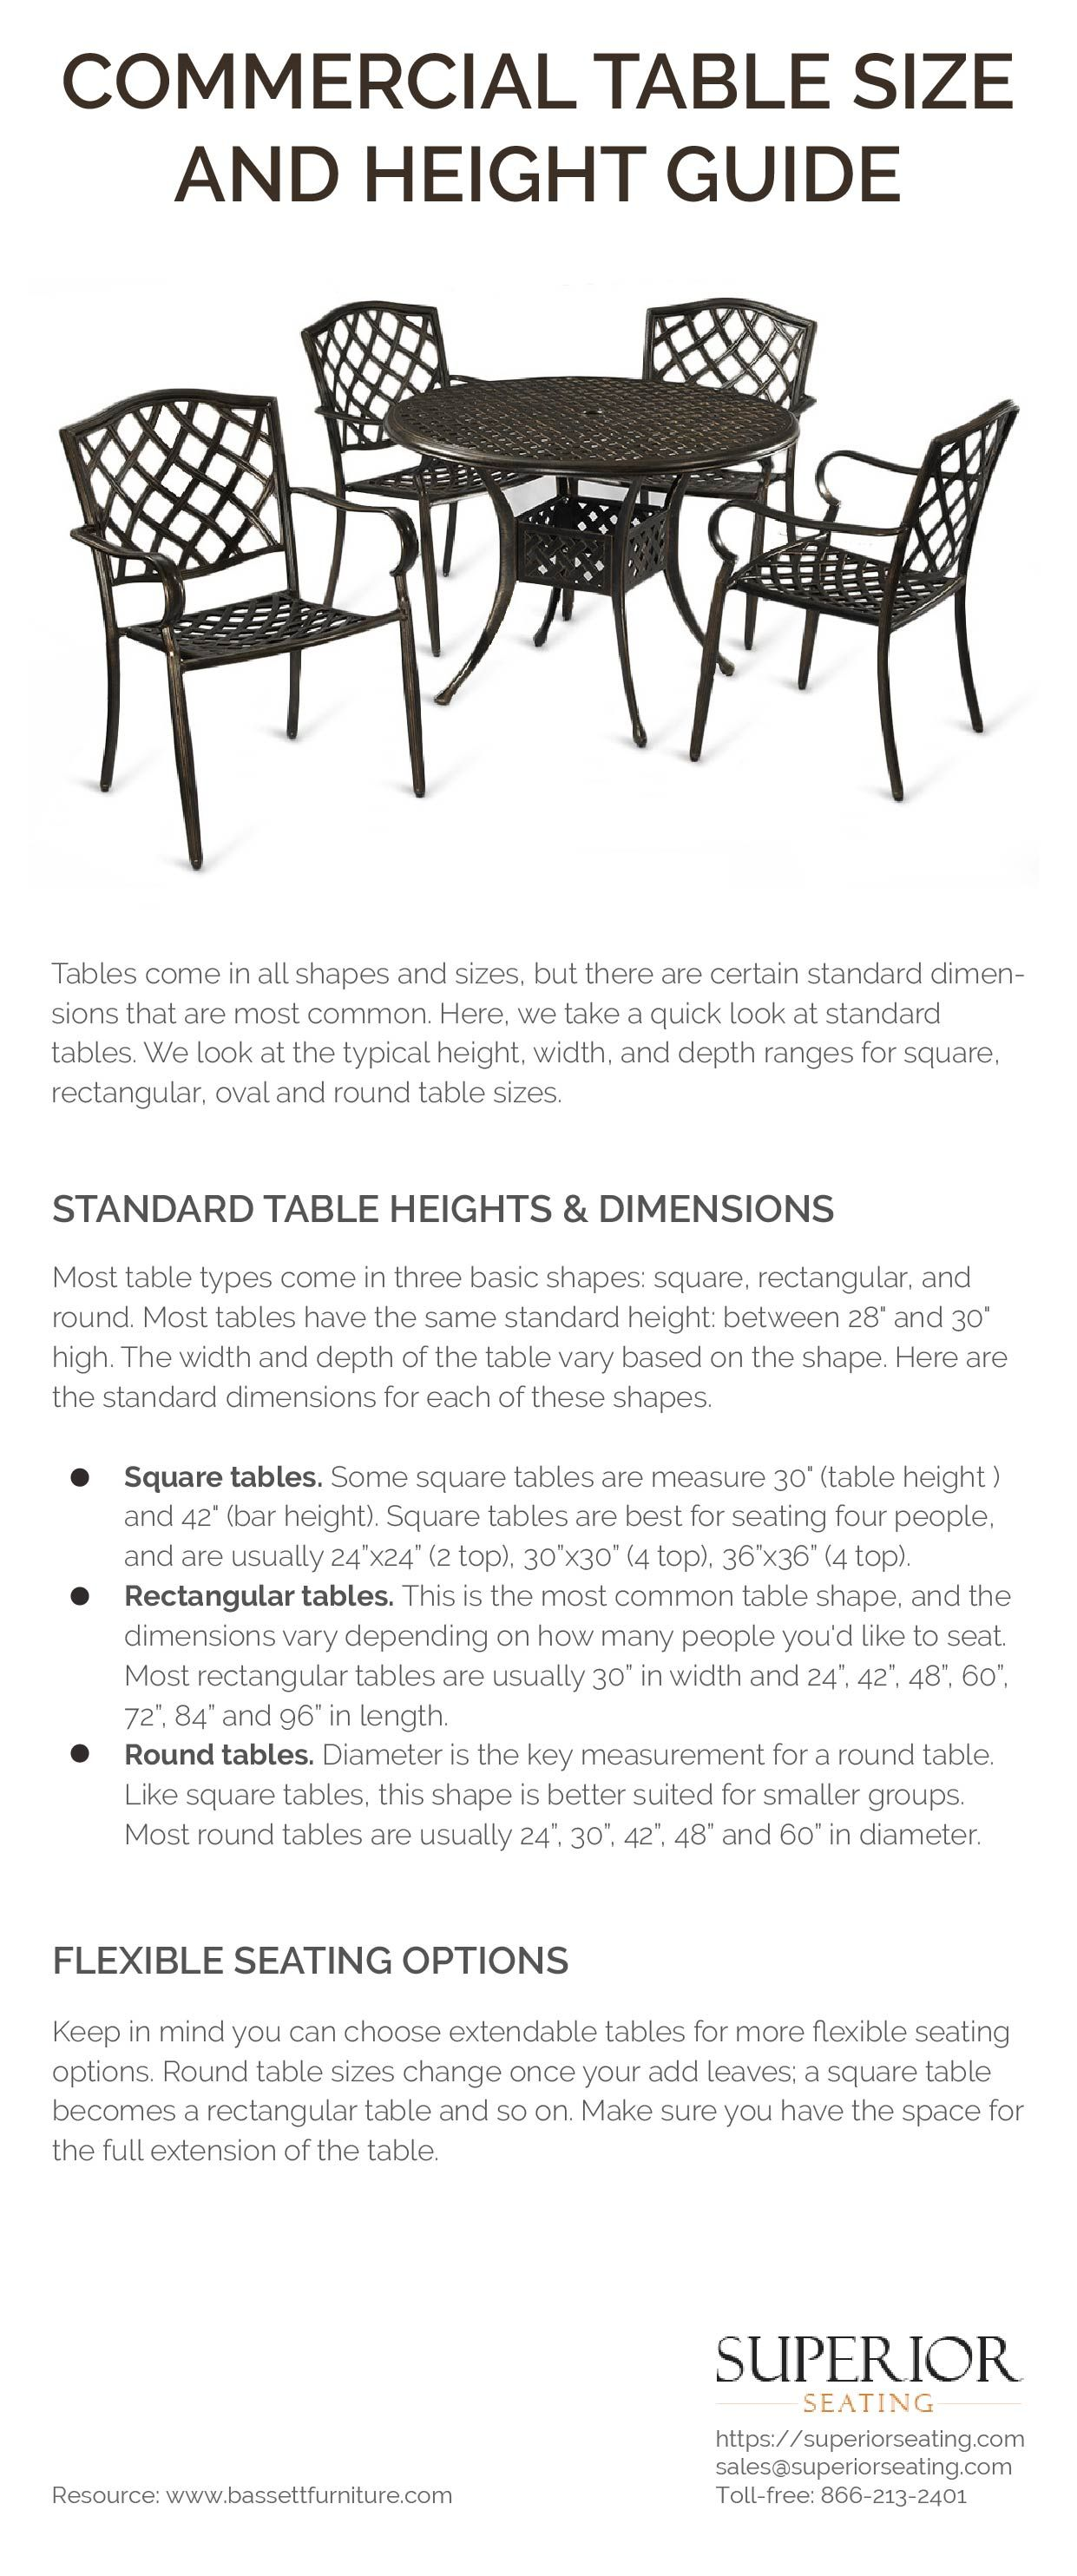 Dining table dimensions standard  superiorseating You can find tables in all shapes and